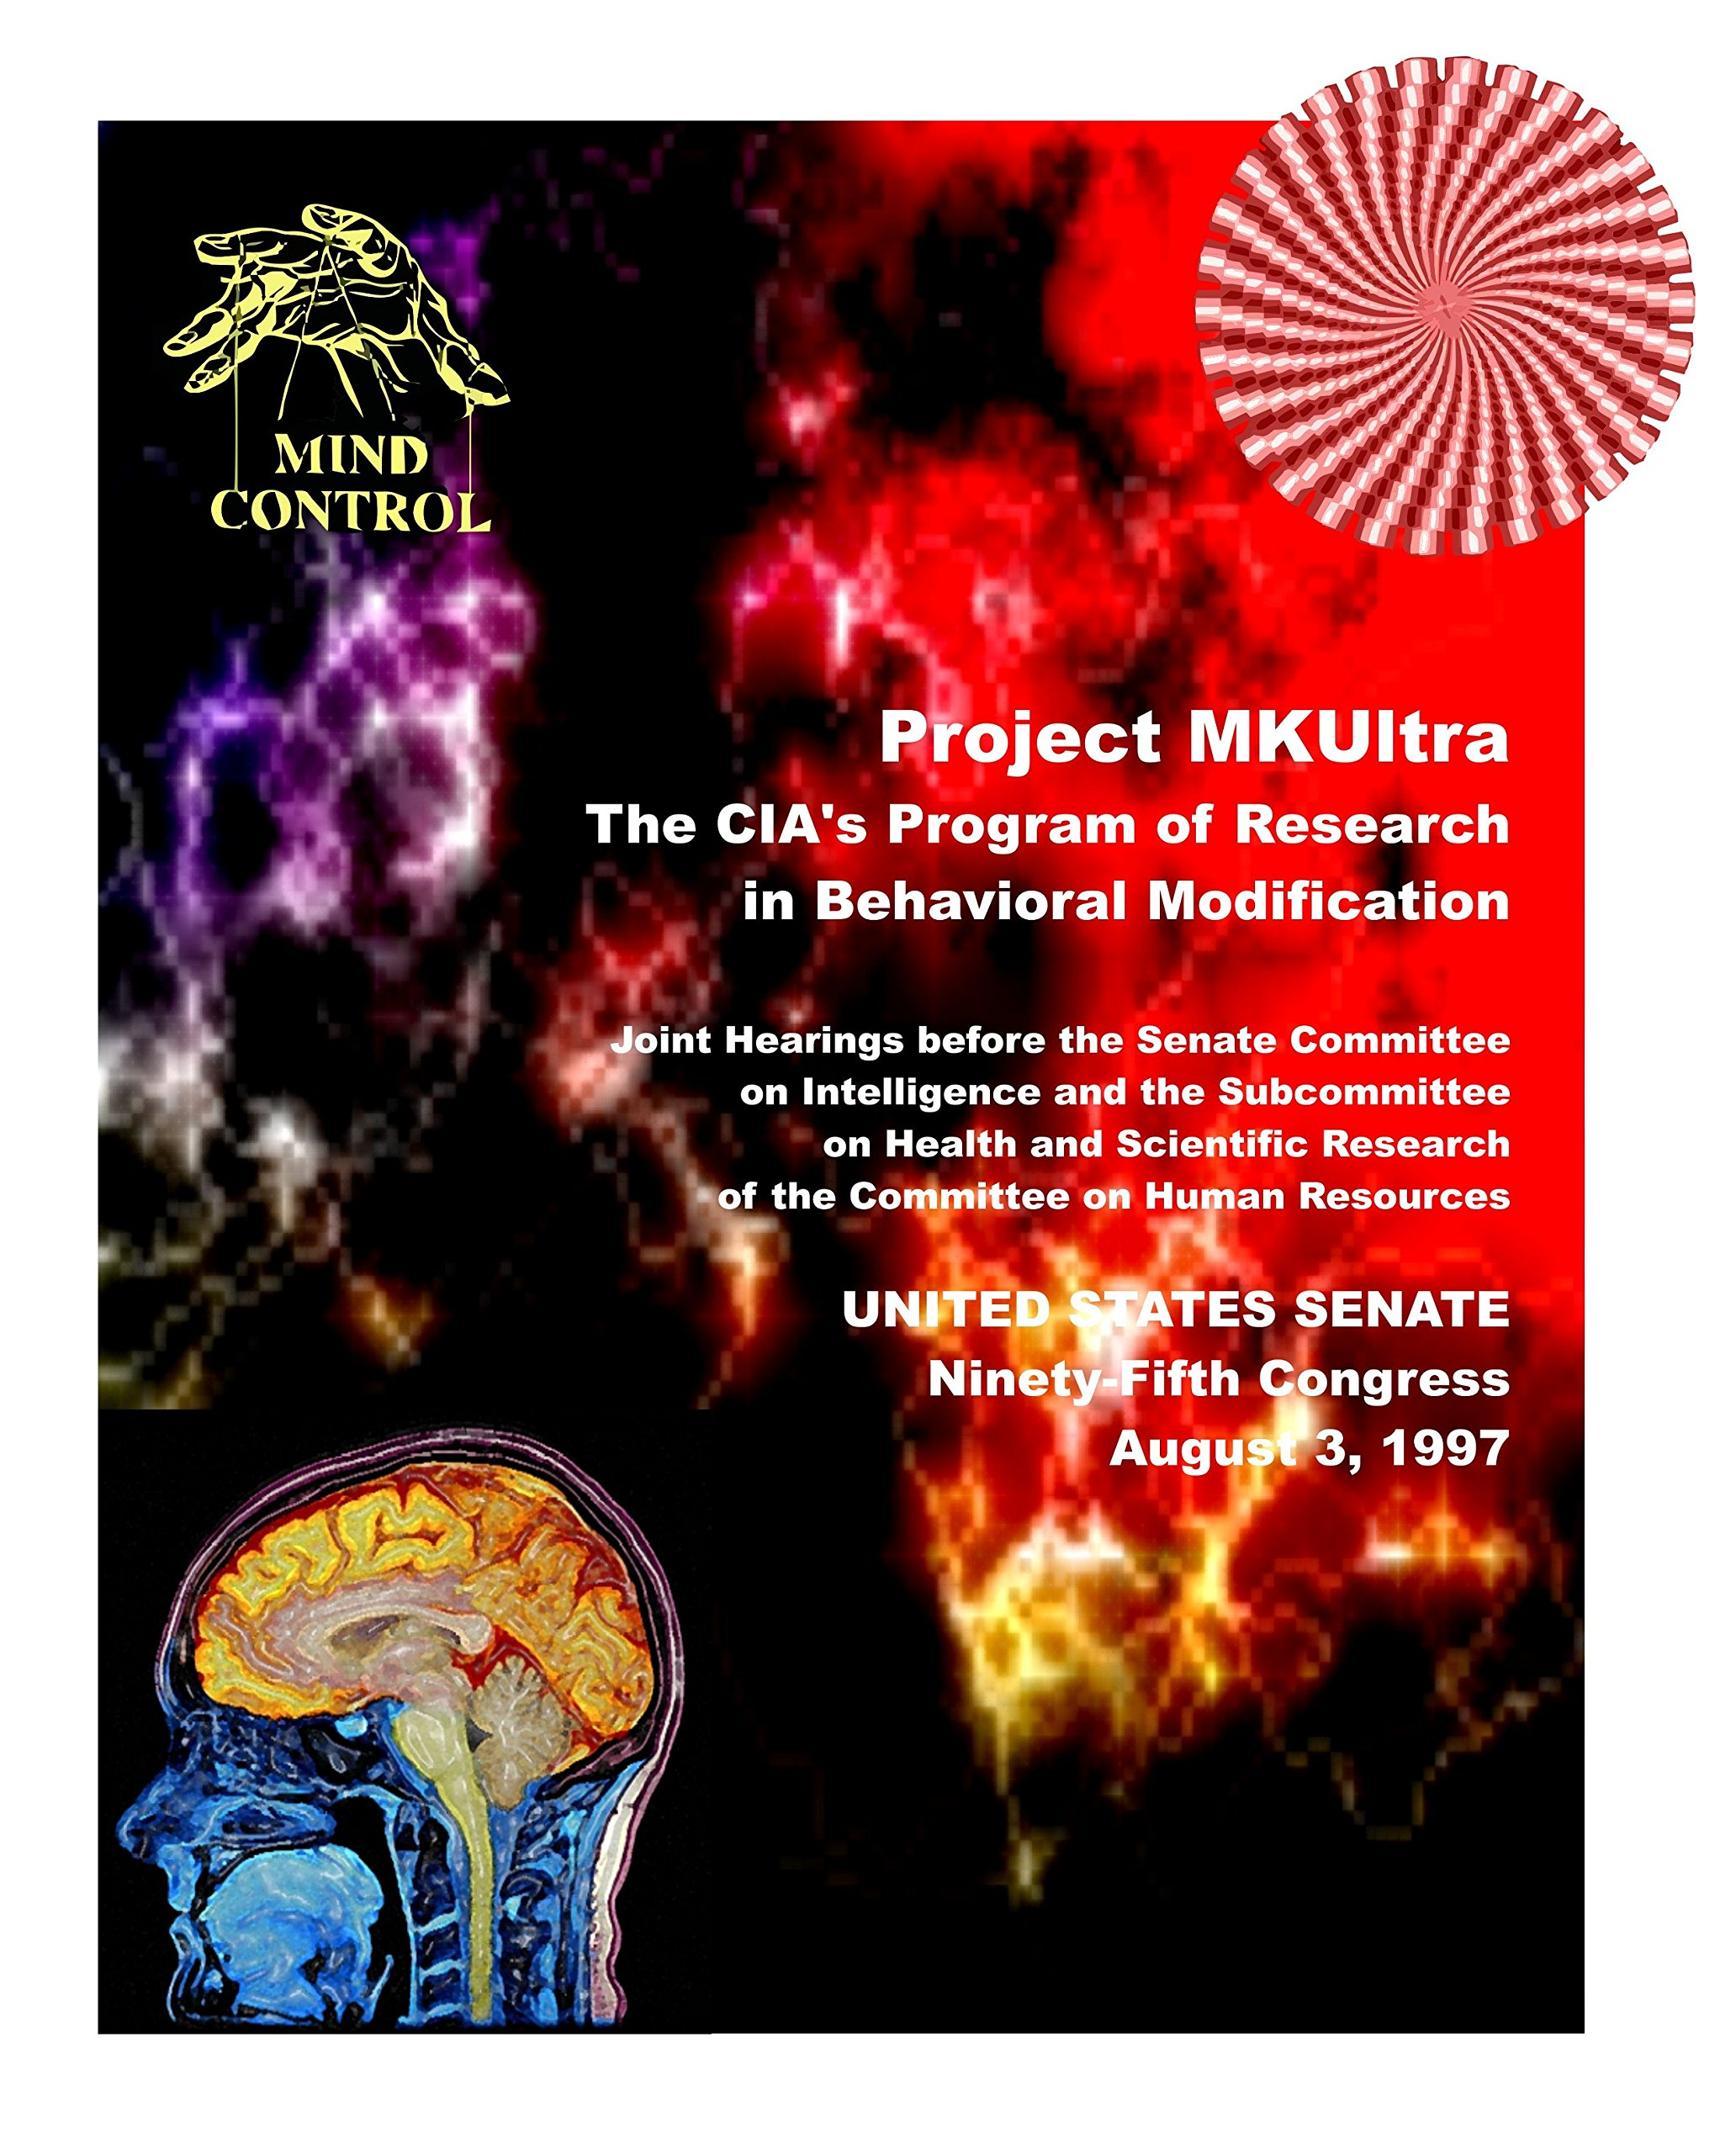 Project MKUltra, The CIA's Program of Research in Behavioral Modification (2012 Reprint of Original Document Facsimiles with Redactions) [Re-Imaged: Greatly De-Blemished, Aligned, Re-Margined] ebook